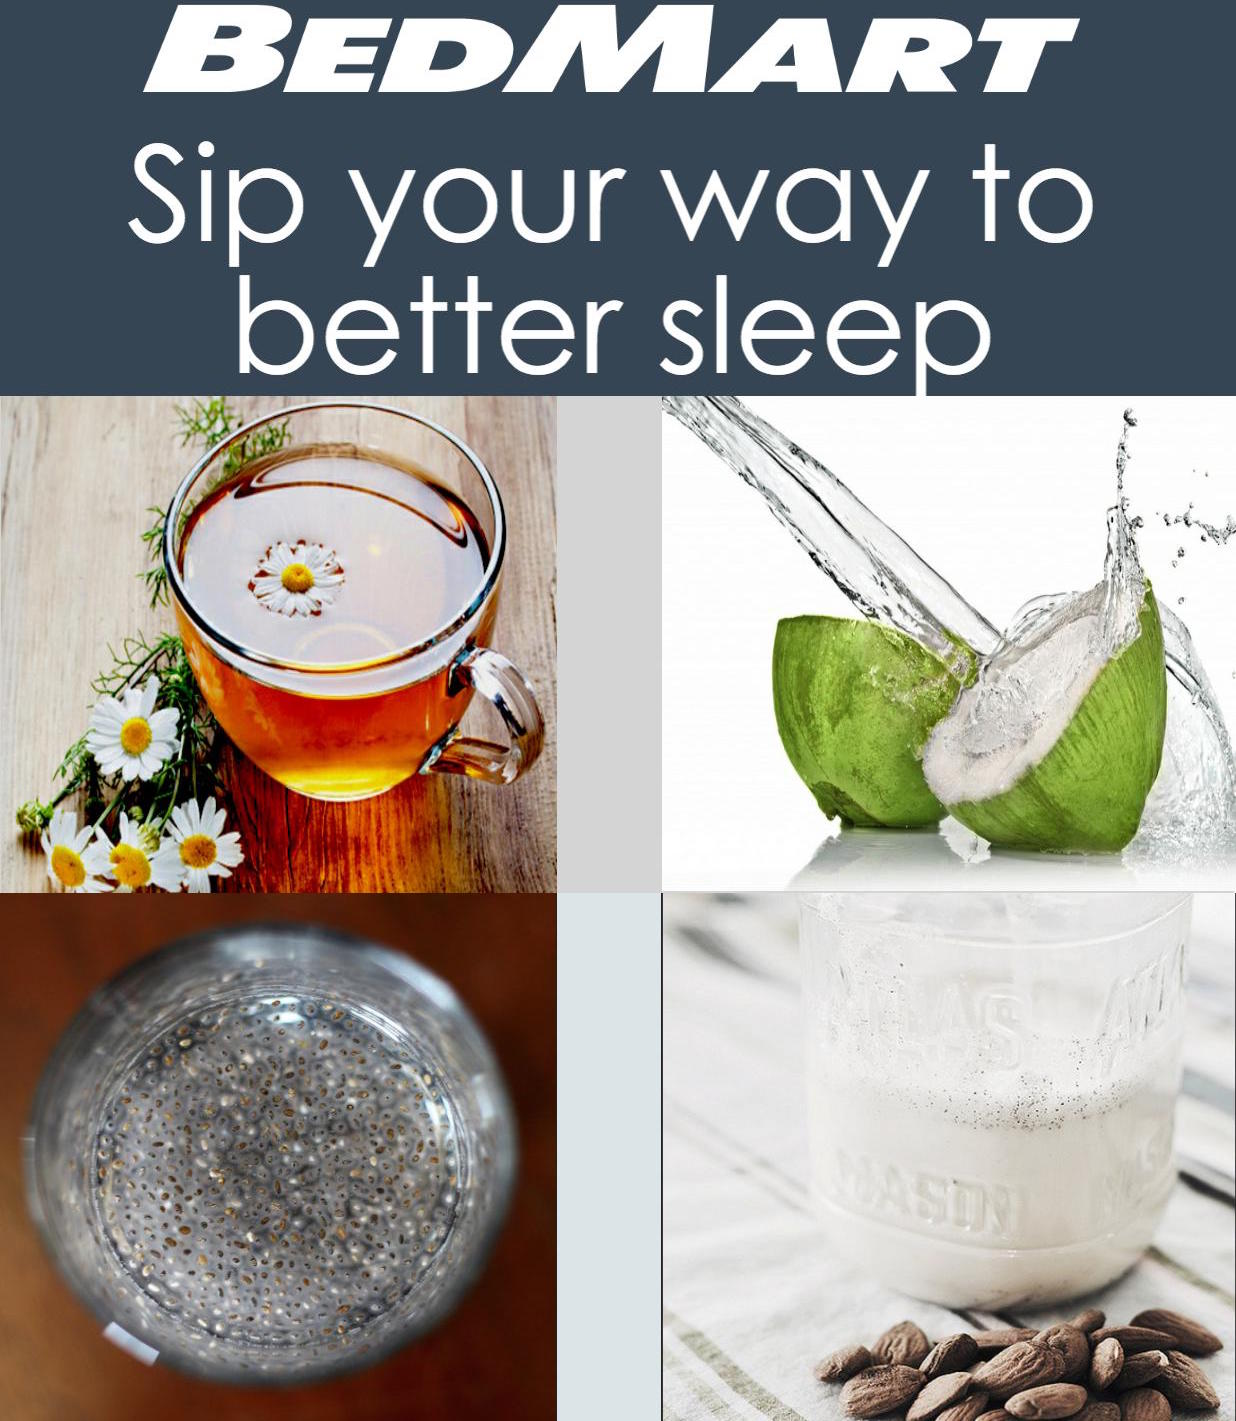 Sip Your Way to Better Sleep